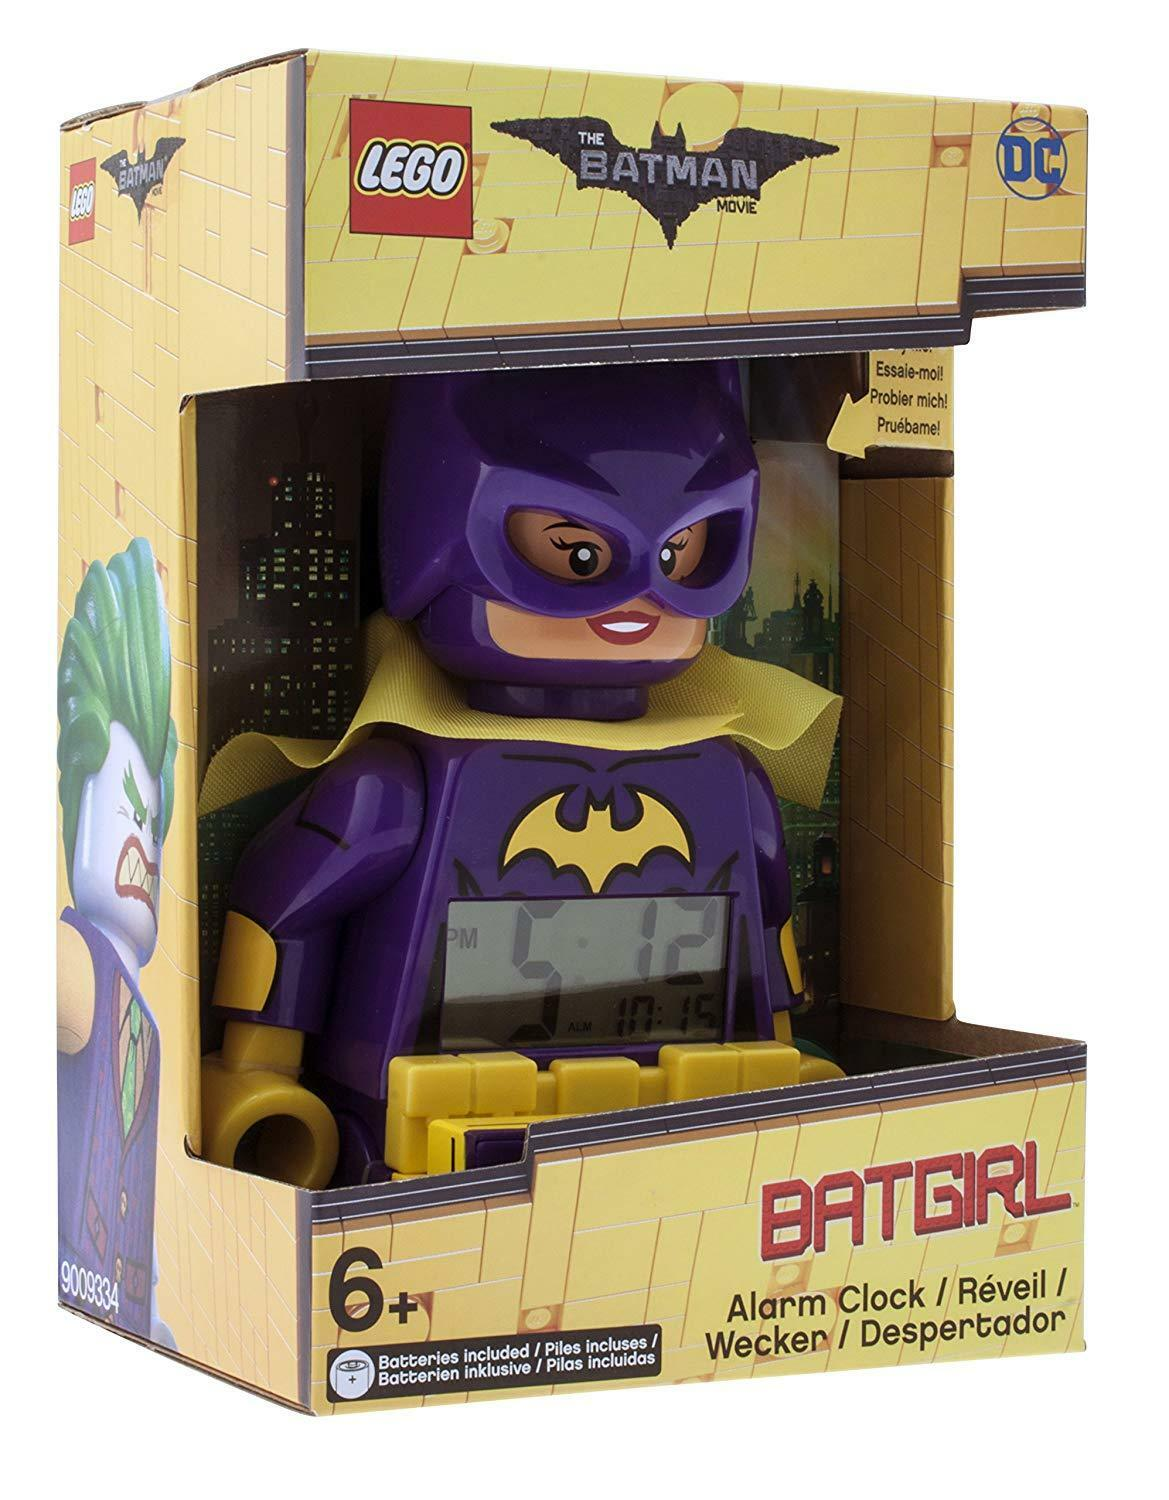 Alarm Lego Batman 9009334 Watch Movie Batgirl Figurine and Games of Construction